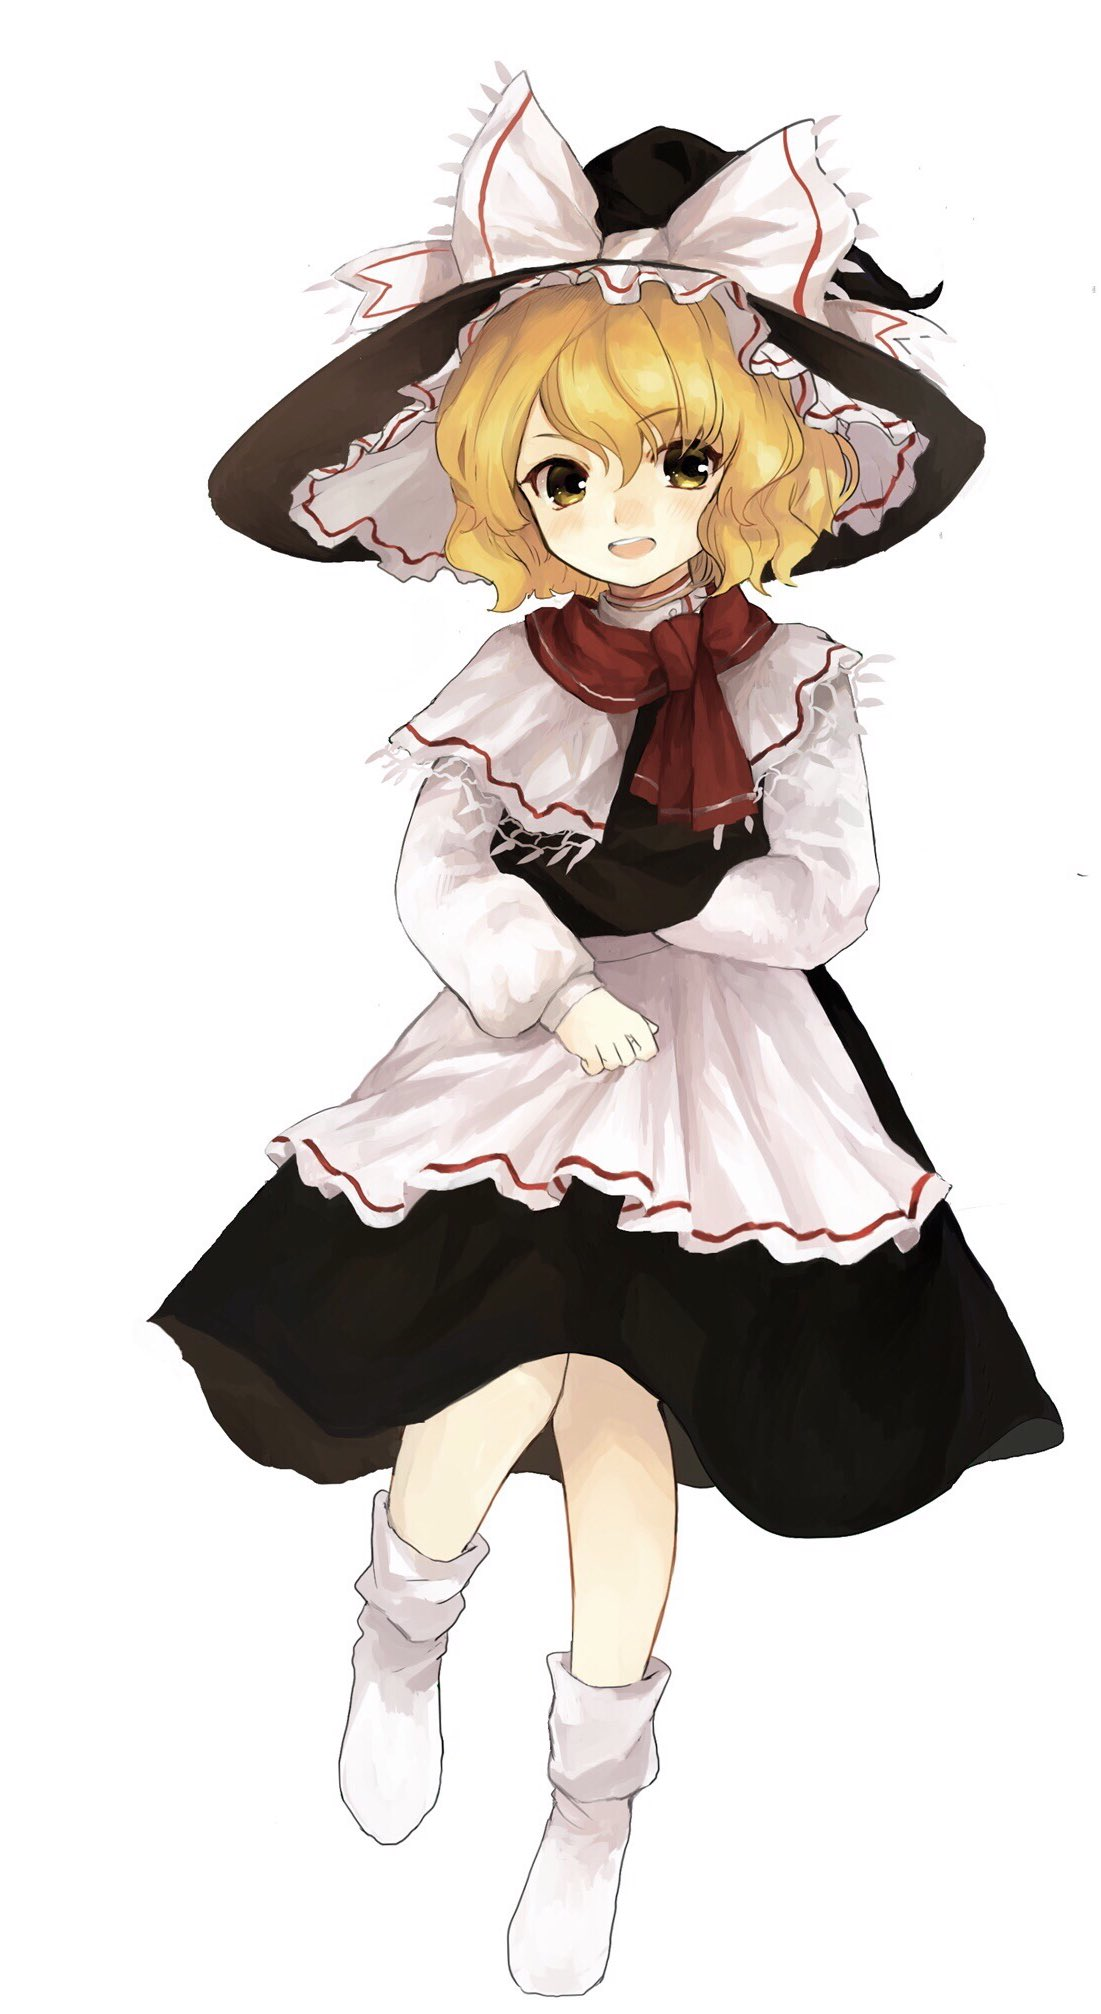 1girl :d apron black_hat black_skirt blonde_hair bobby_socks bow capelet commentary_request full_body hat hat_bow highres kirisame_marisa long_sleeves no_shoes open_mouth perfect_cherry_blossom red_scarf scarf short_hair shoudoku_taishi_(taishi) simple_background skirt smile socks solo touhou waist_apron white_apron white_background white_bow white_legwear witch_hat yellow_eyes